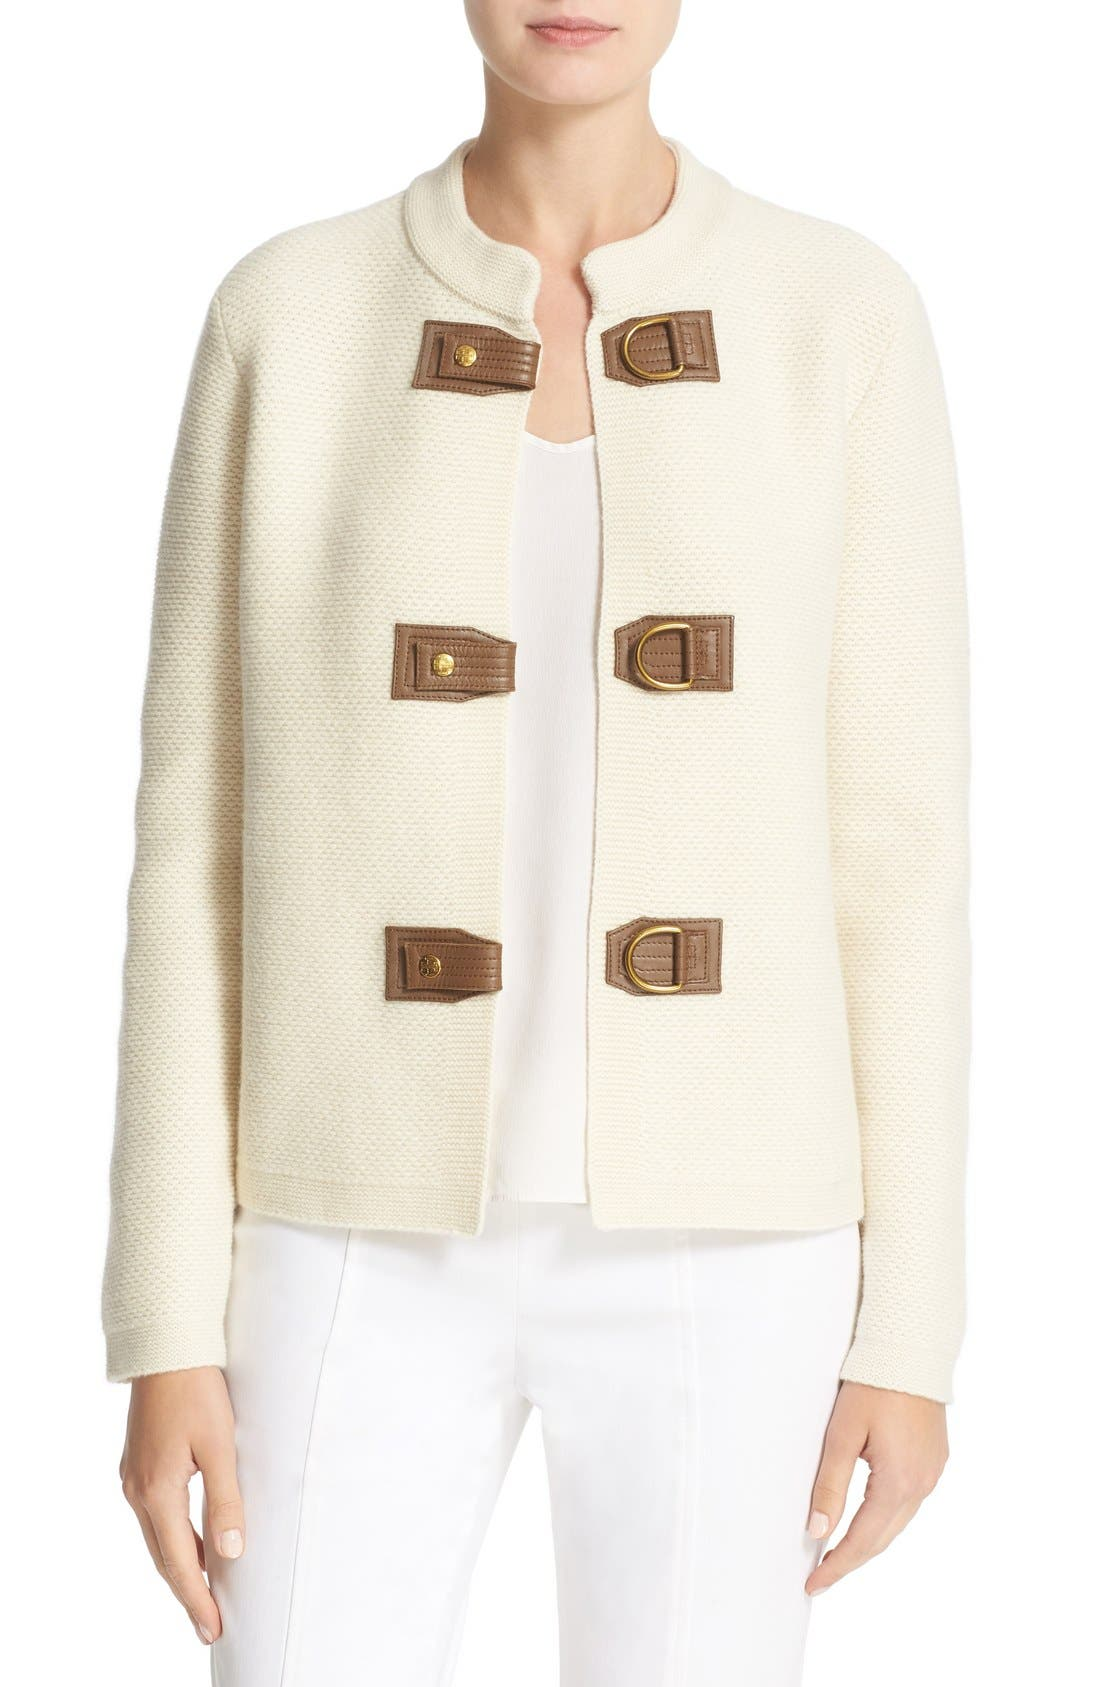 Main Image - Tory Burch 'Ross' Leather Tab Merino Wool Cardigan